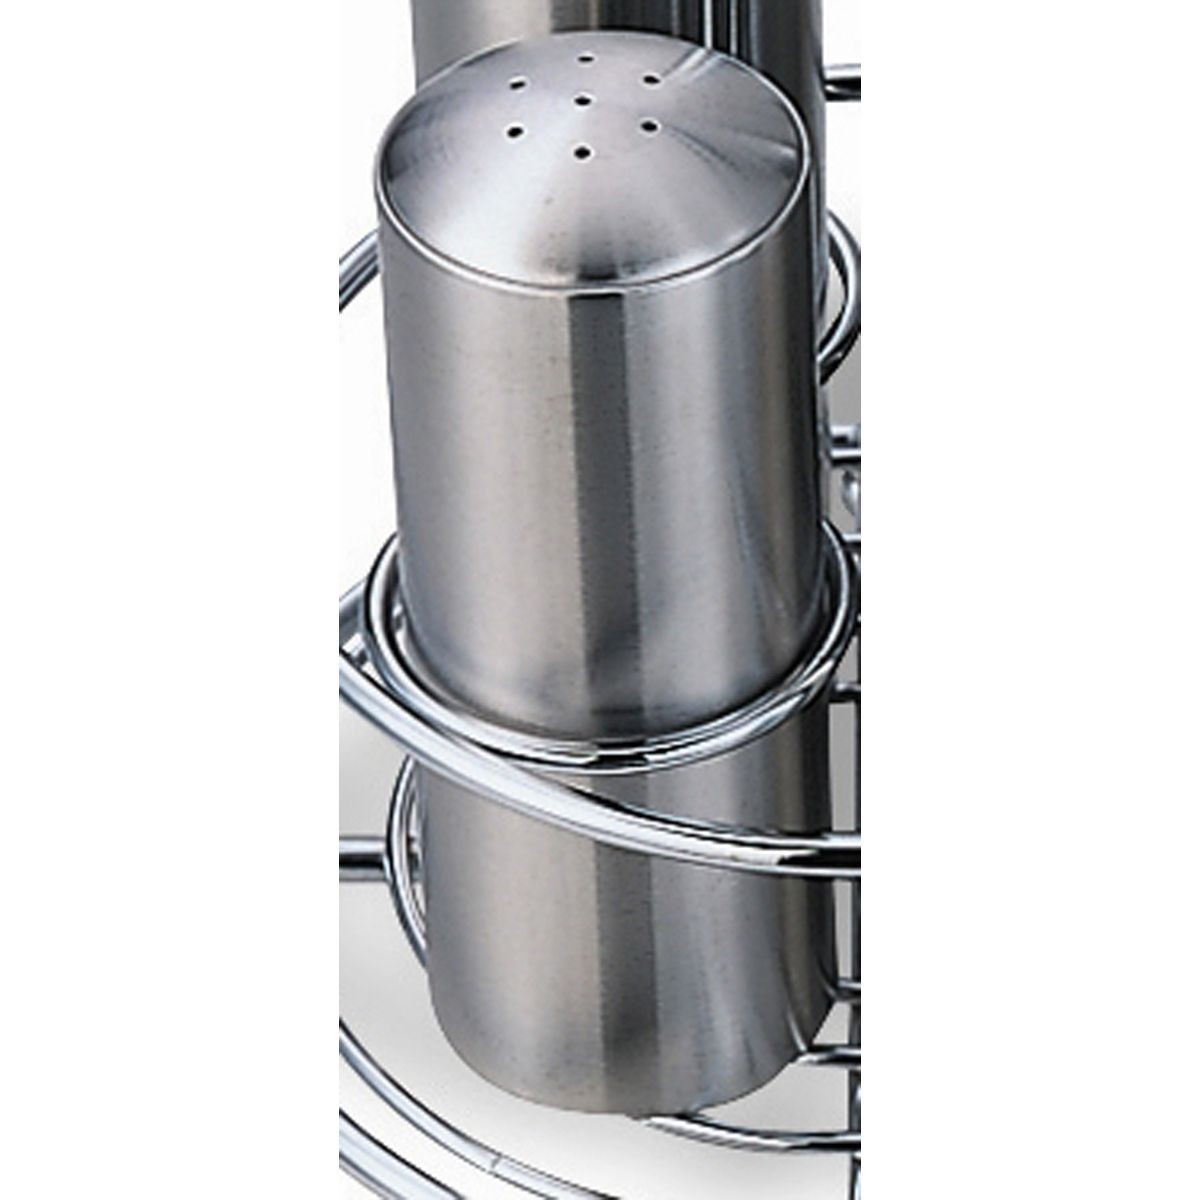 Service Ideas STC7 Stainless Steel 7-Hole Condiment Shaker